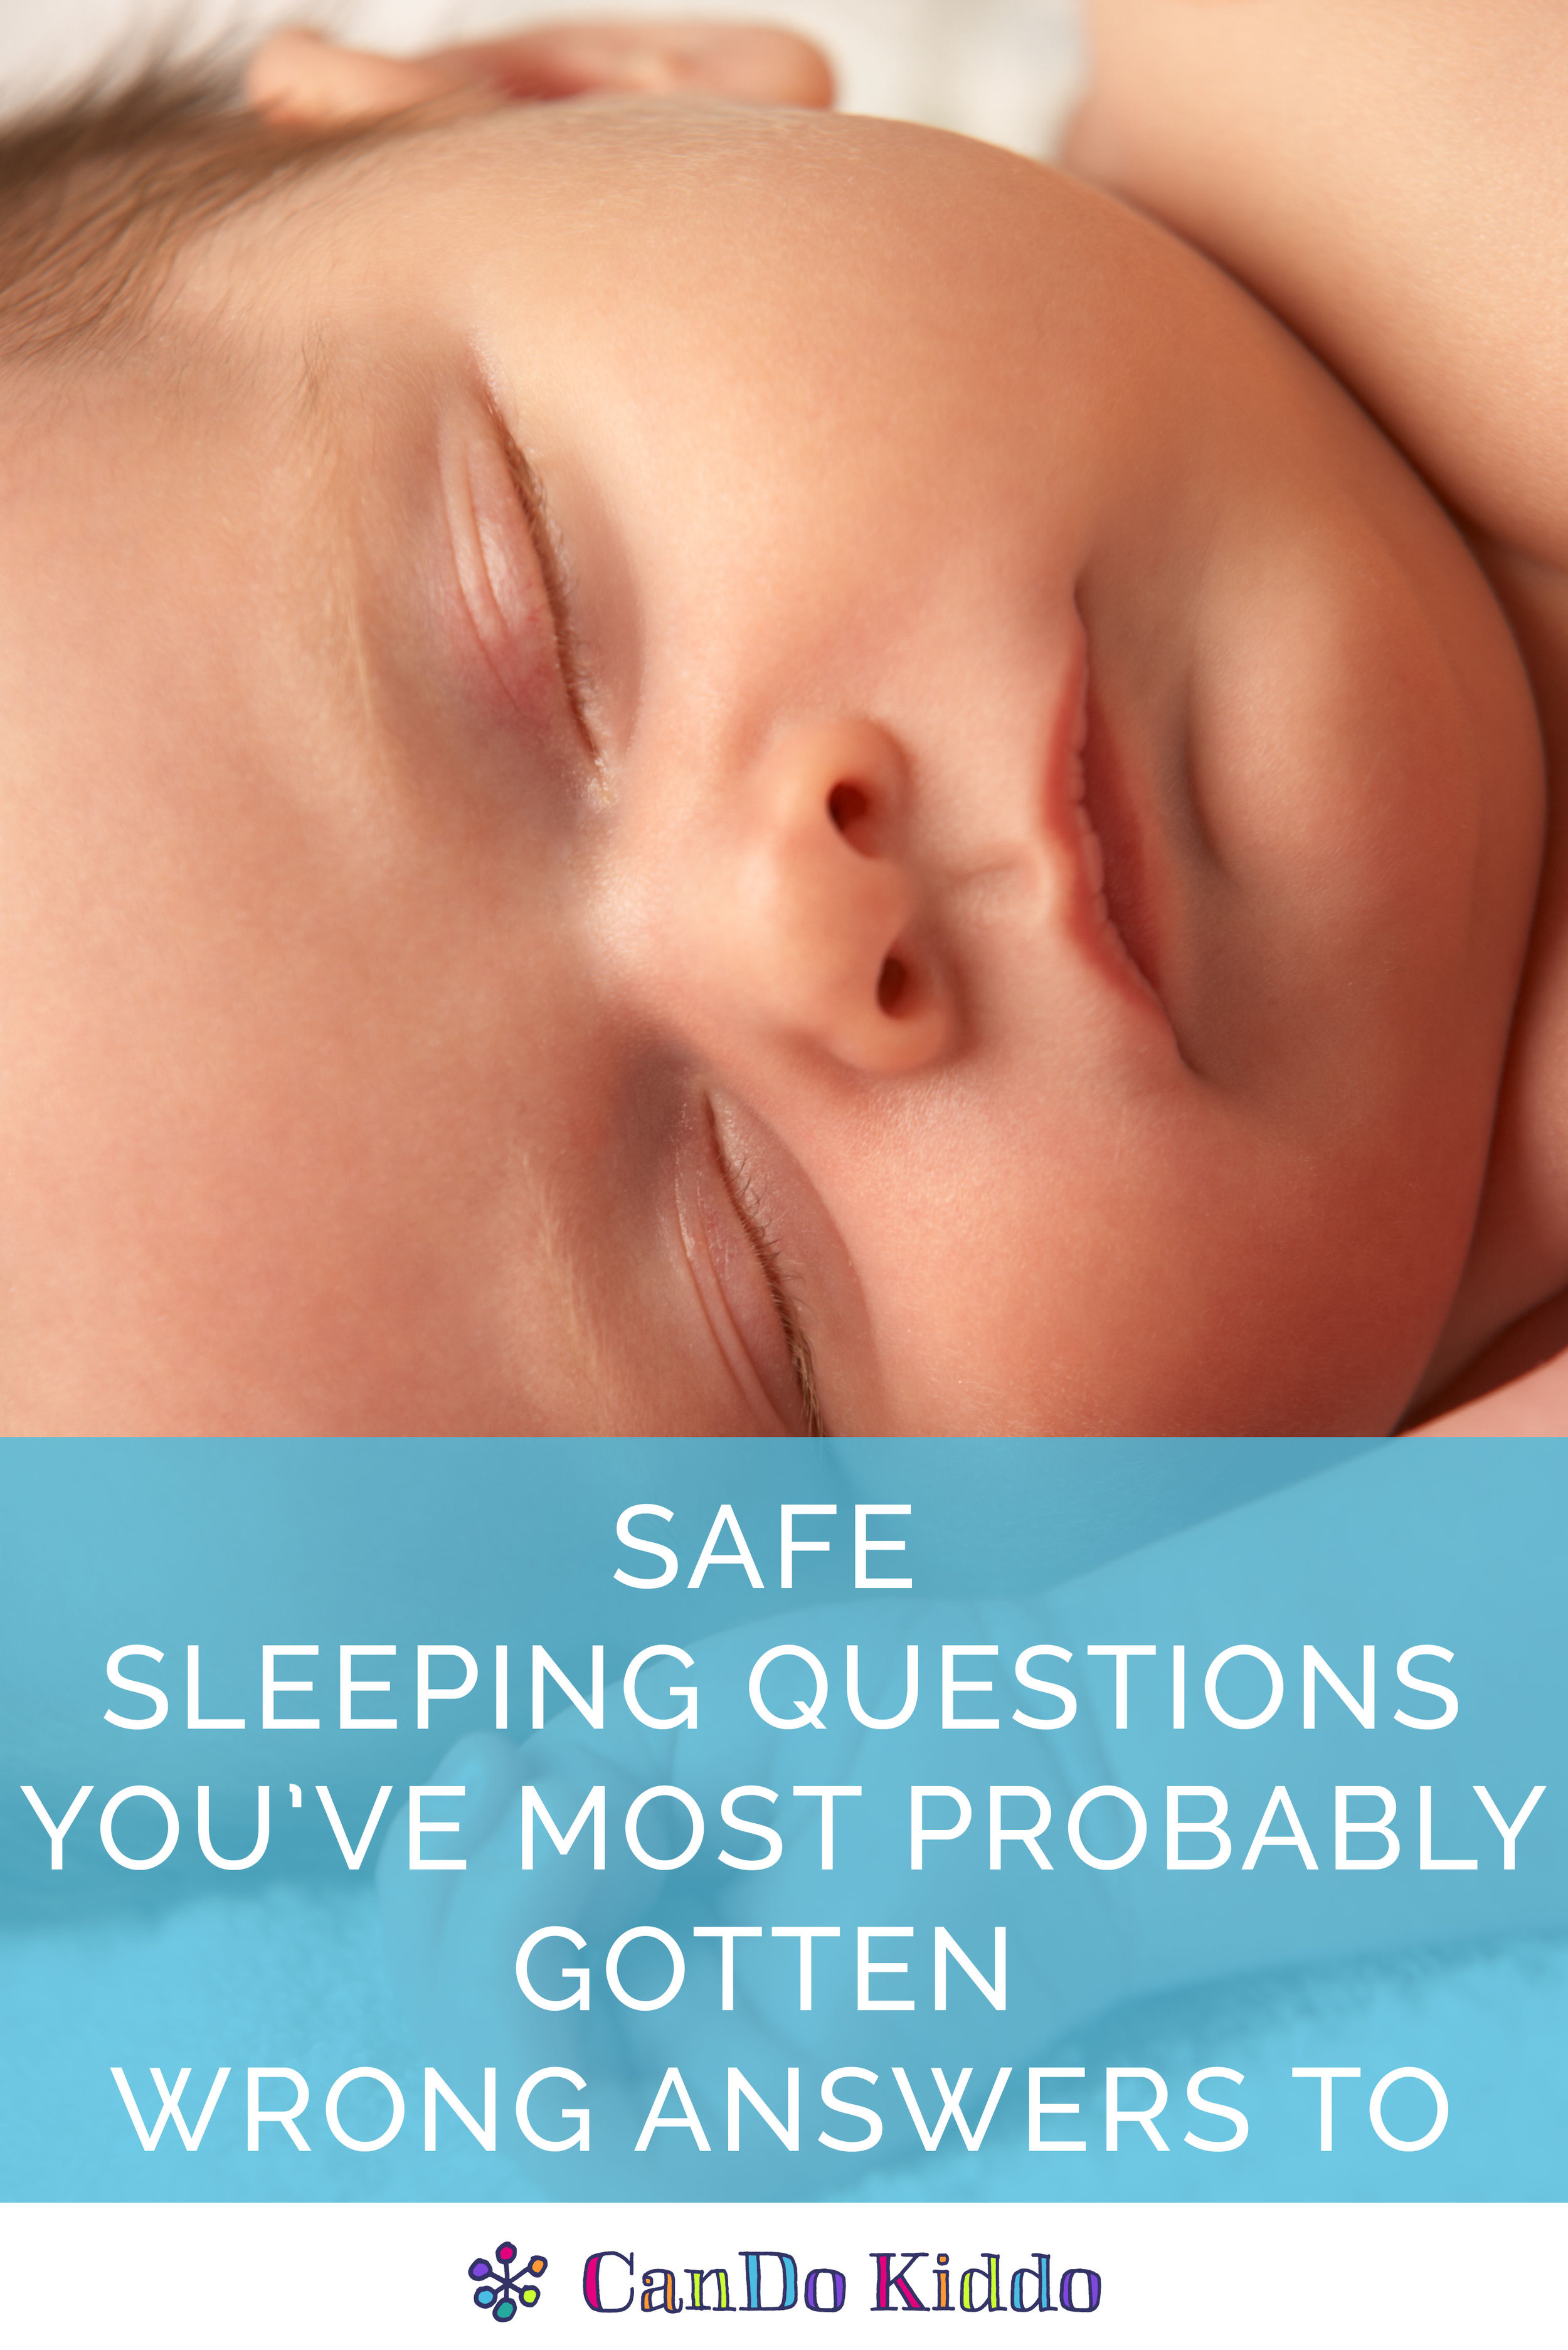 safe sleep for baby - SIDS reduction